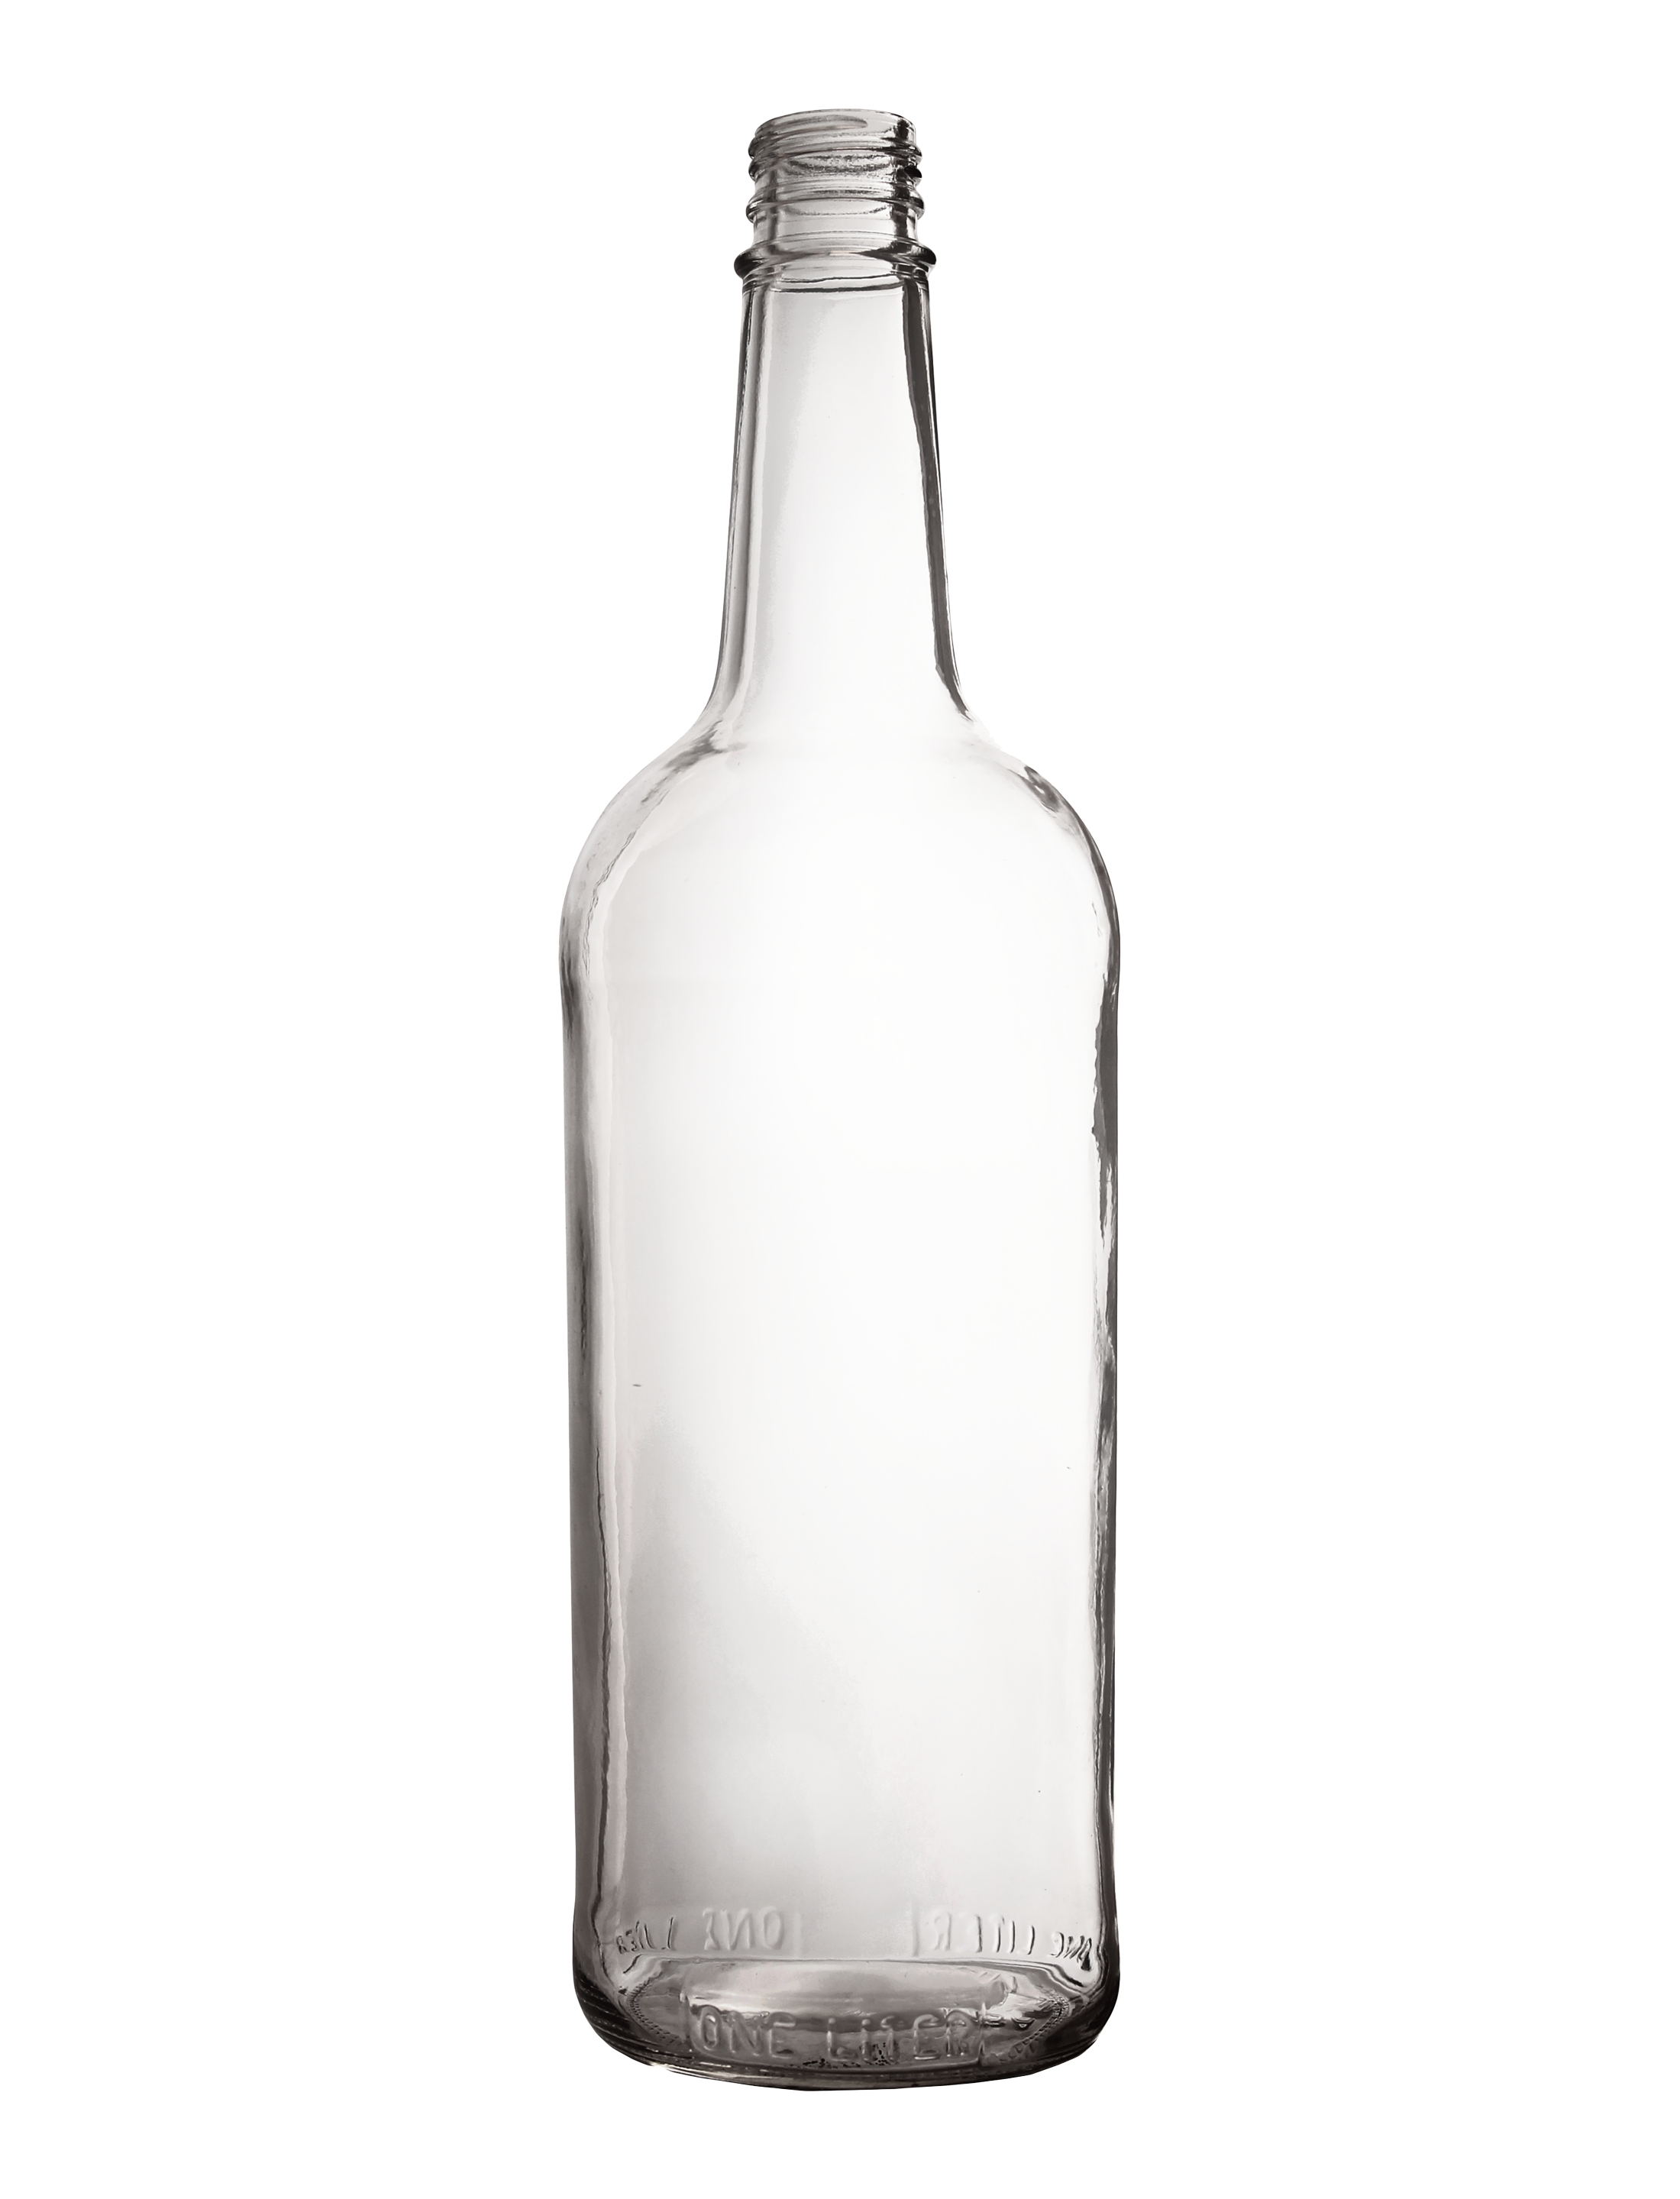 Glass Bottle Png